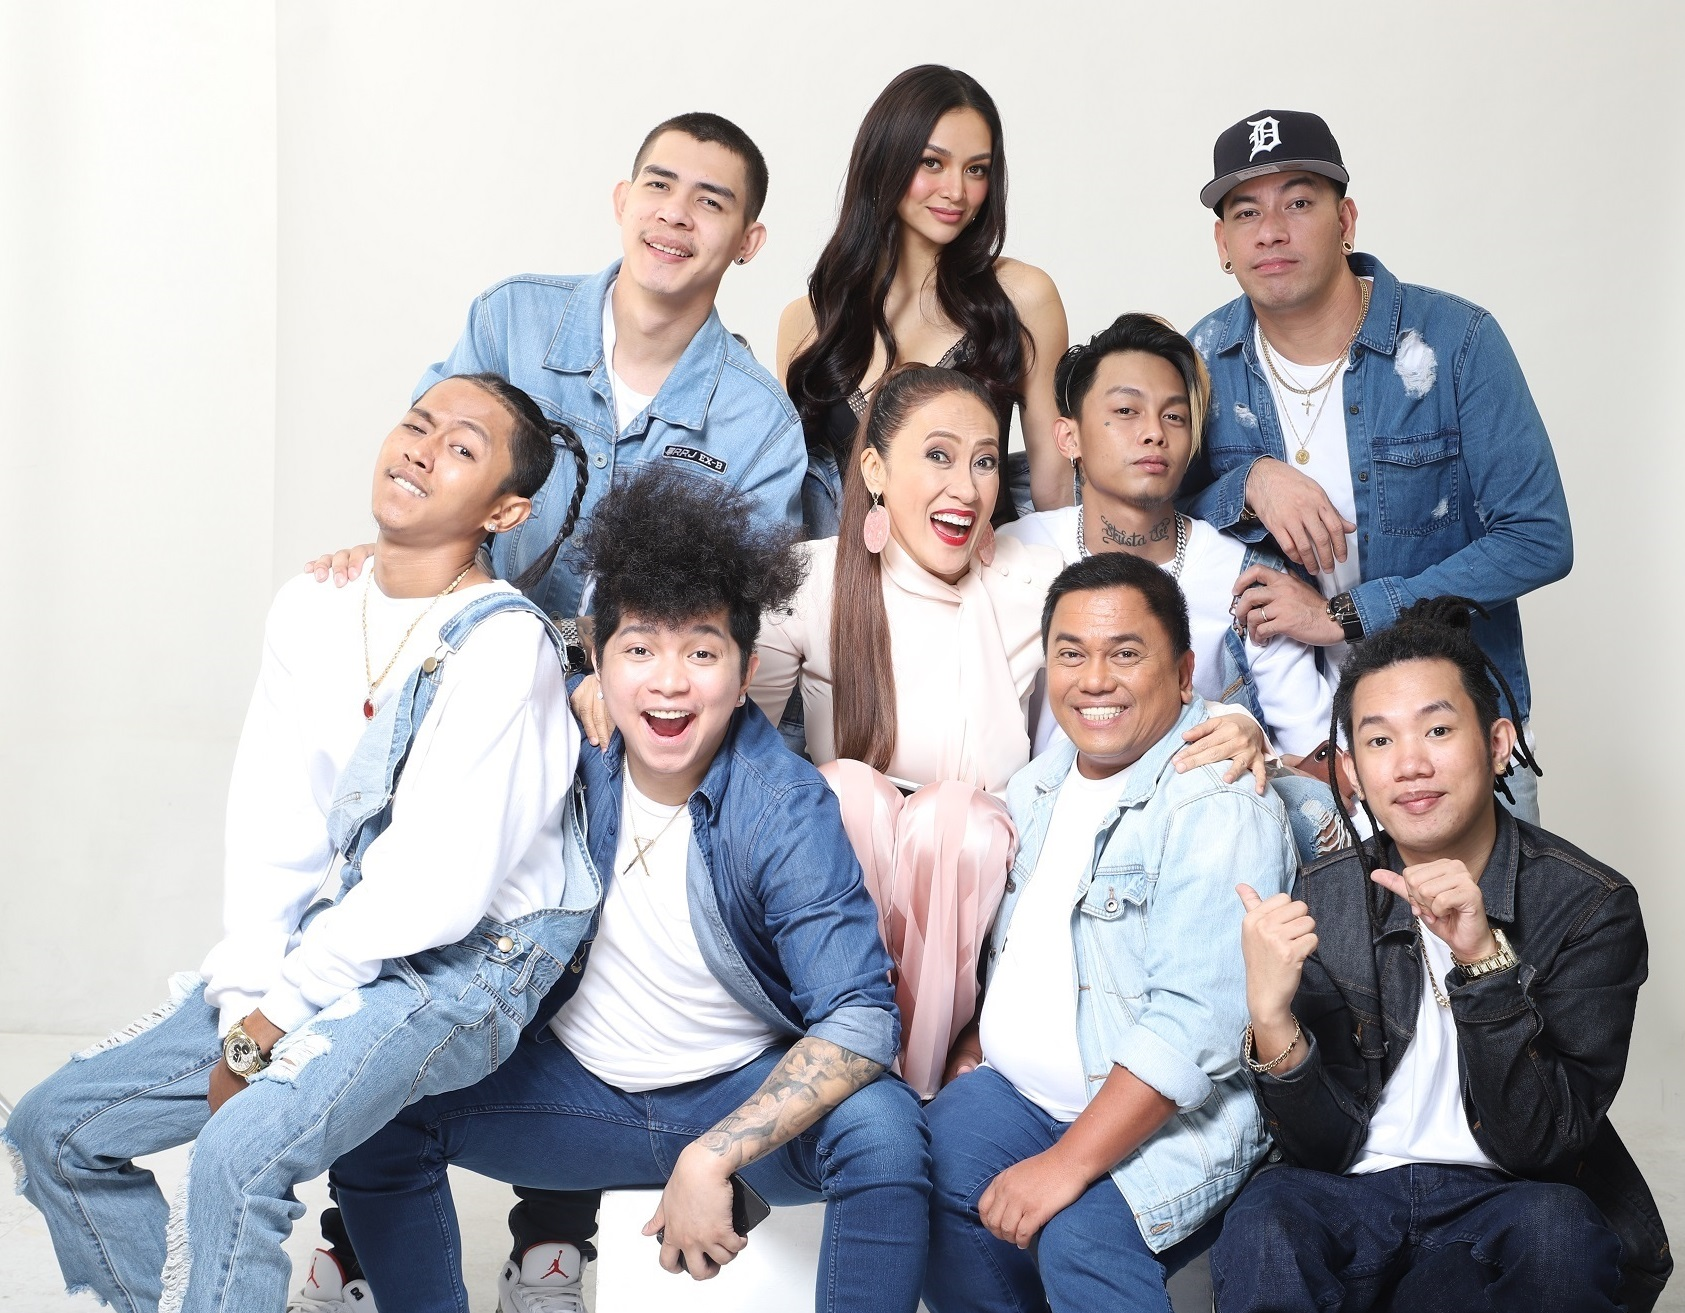 AiAi de las Alas with Sheree and members of the Ex-Battalion